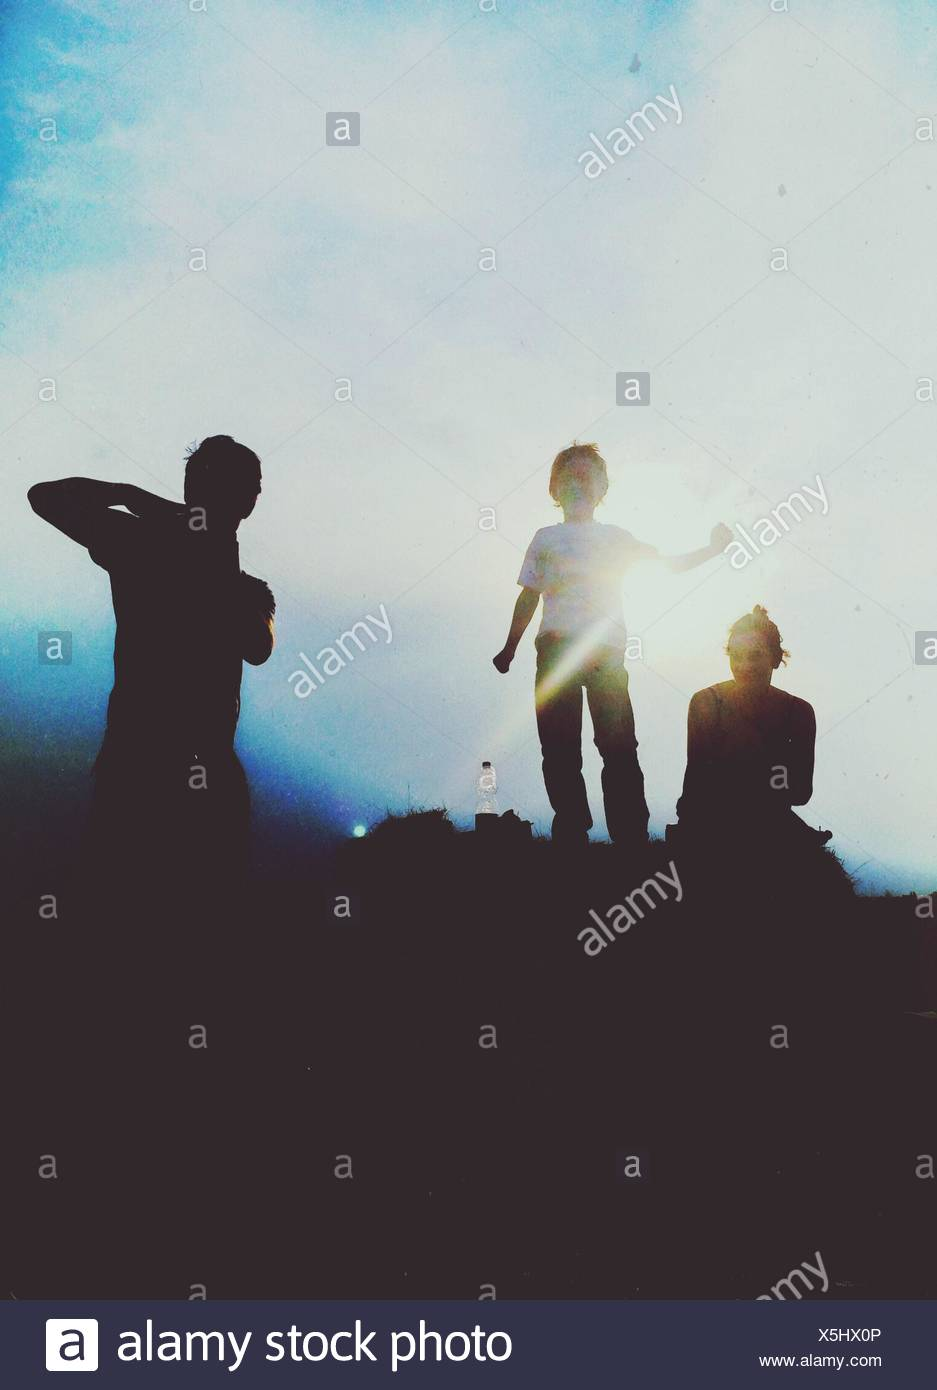 Silhouettes Of People In Sunlight Stock Photo